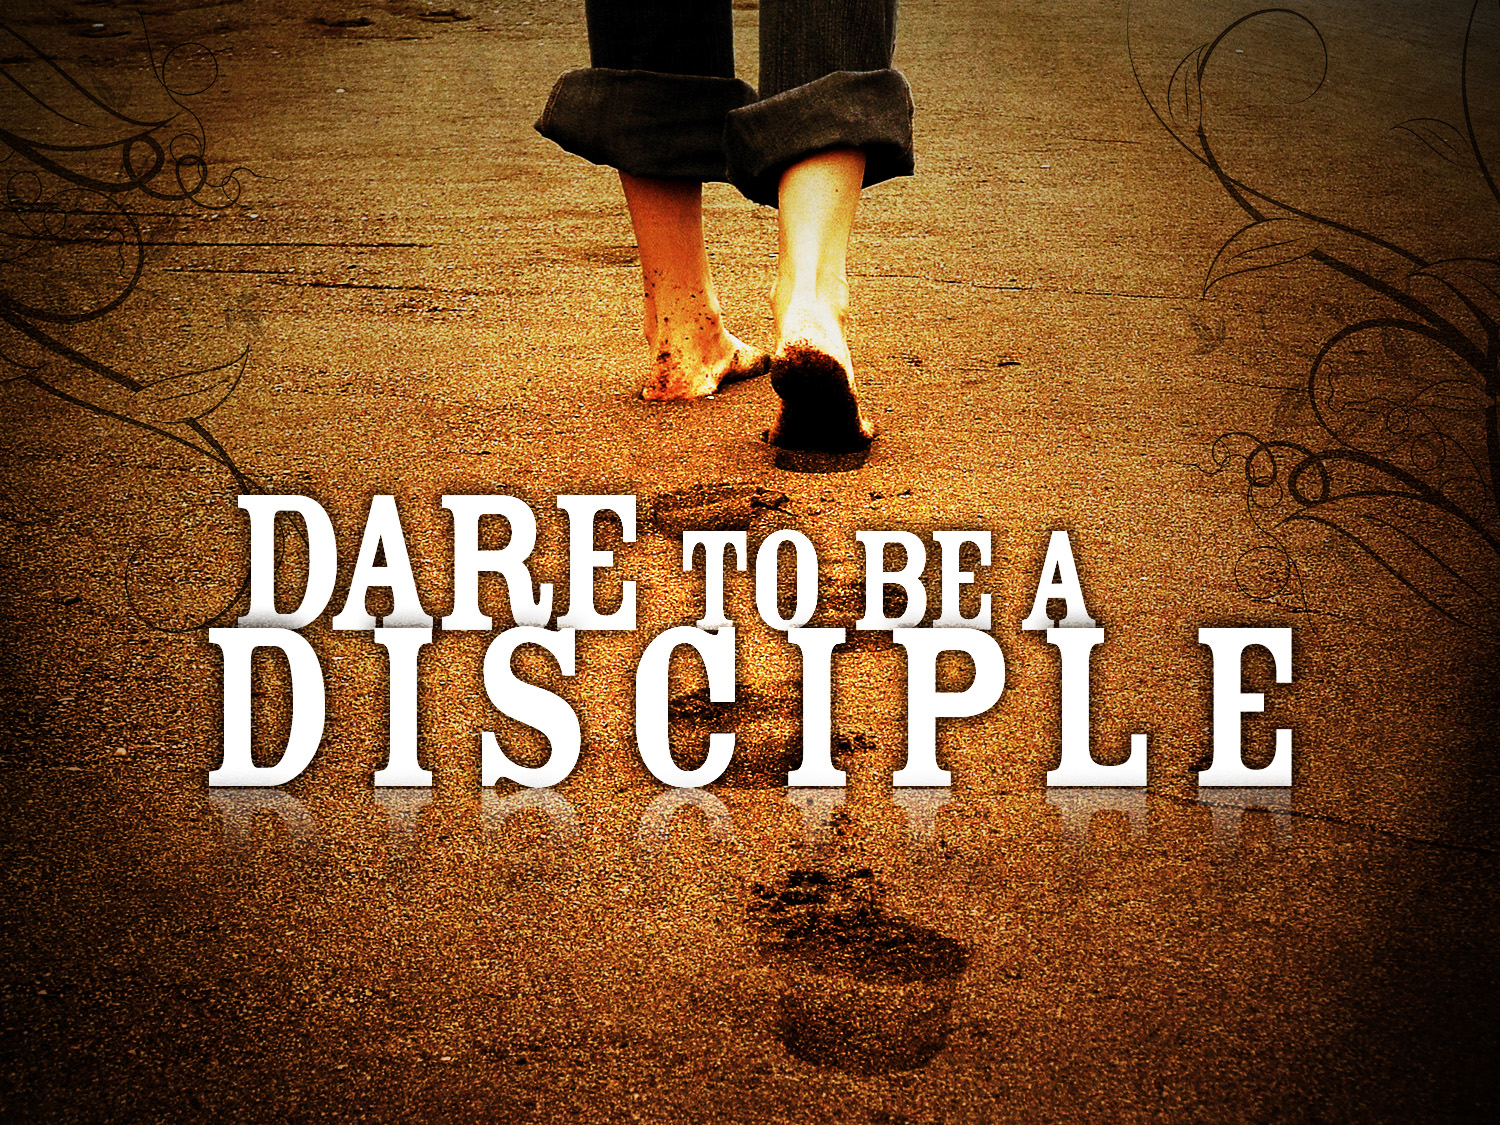 A Prayer Without Discipleship Is Dead